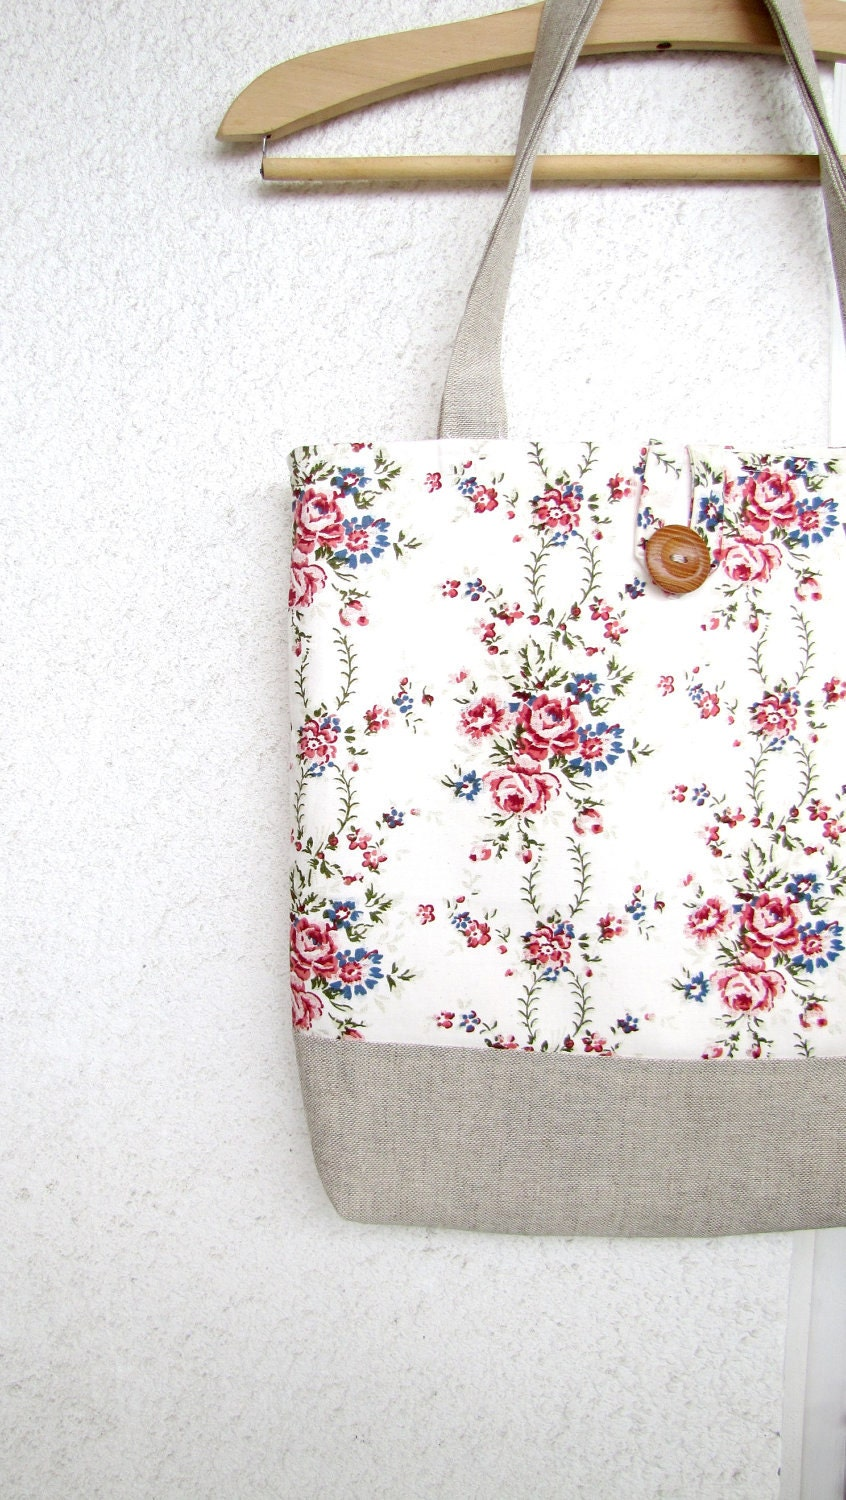 Aroma Garden - Roses Patterned Tote Bag